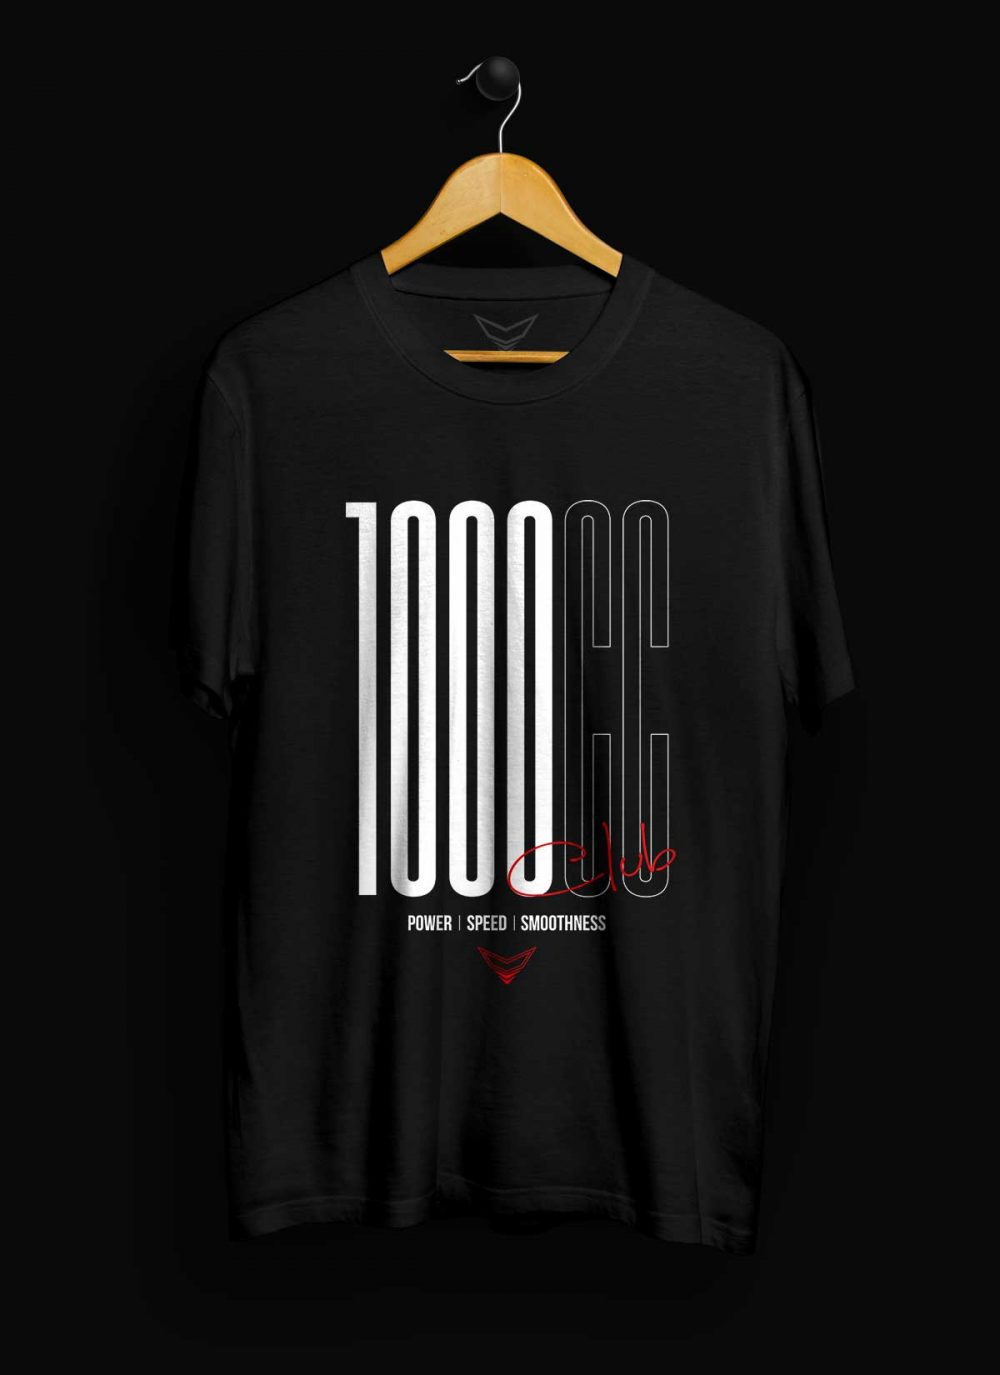 1000cc Club T-Shirt